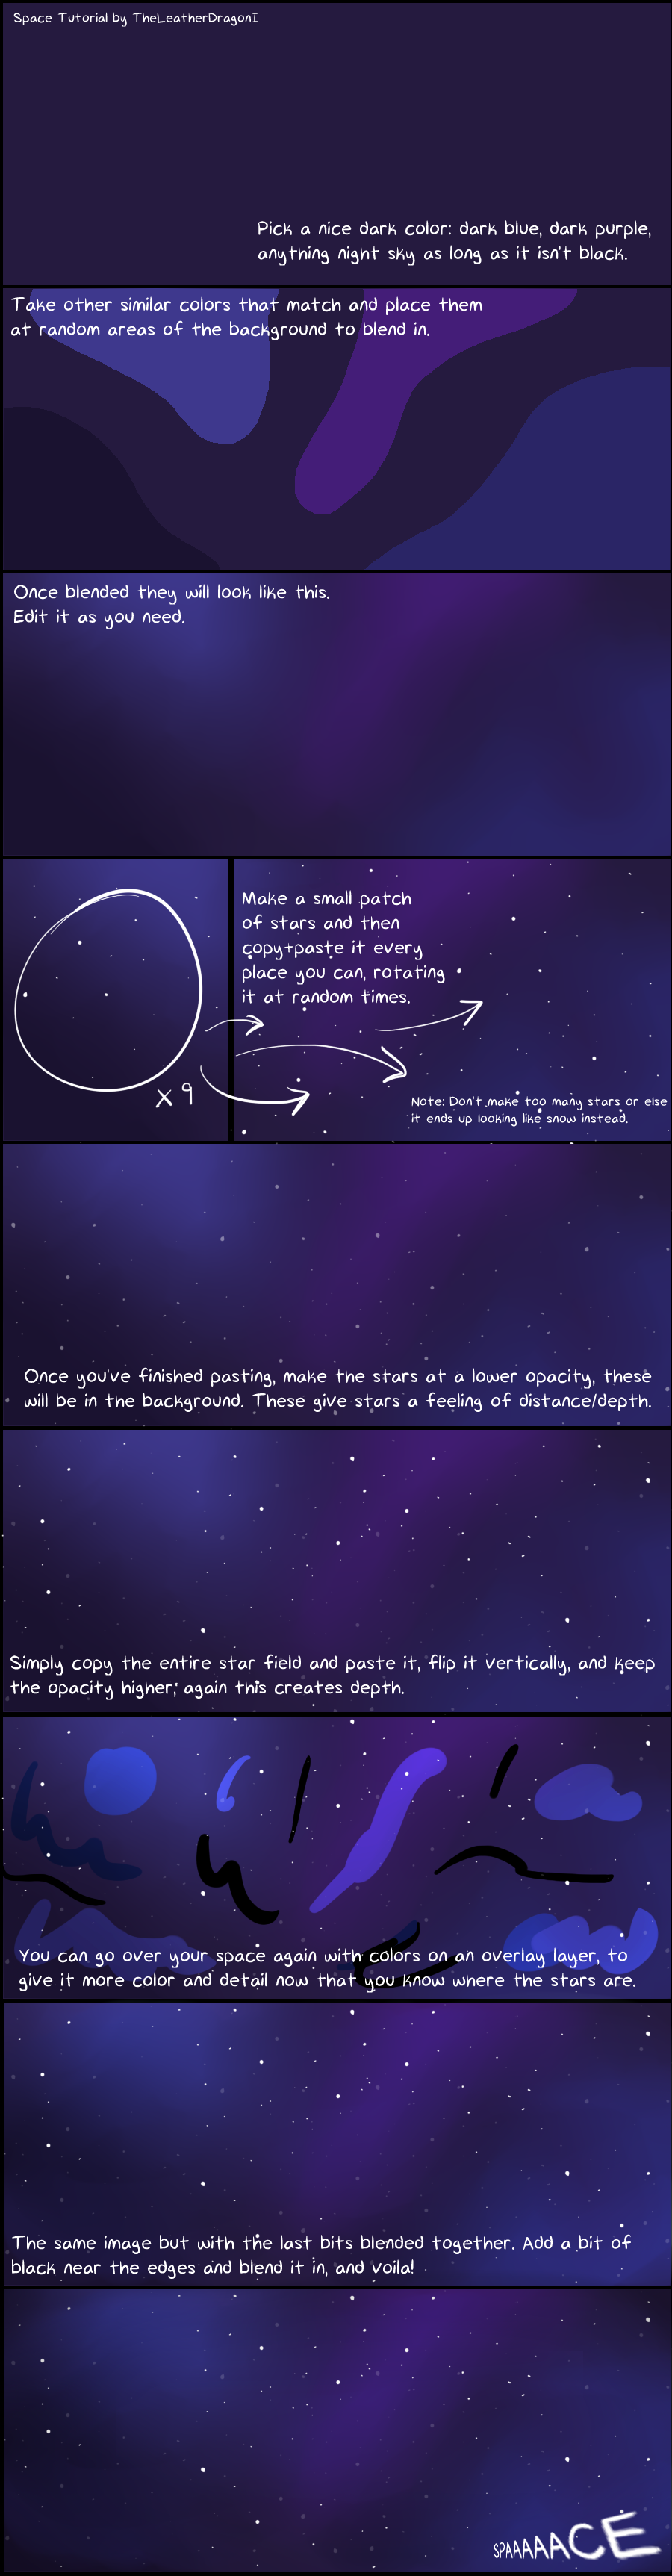 Space tutorial by theleatherdragoni on deviantart for Space art tutorial